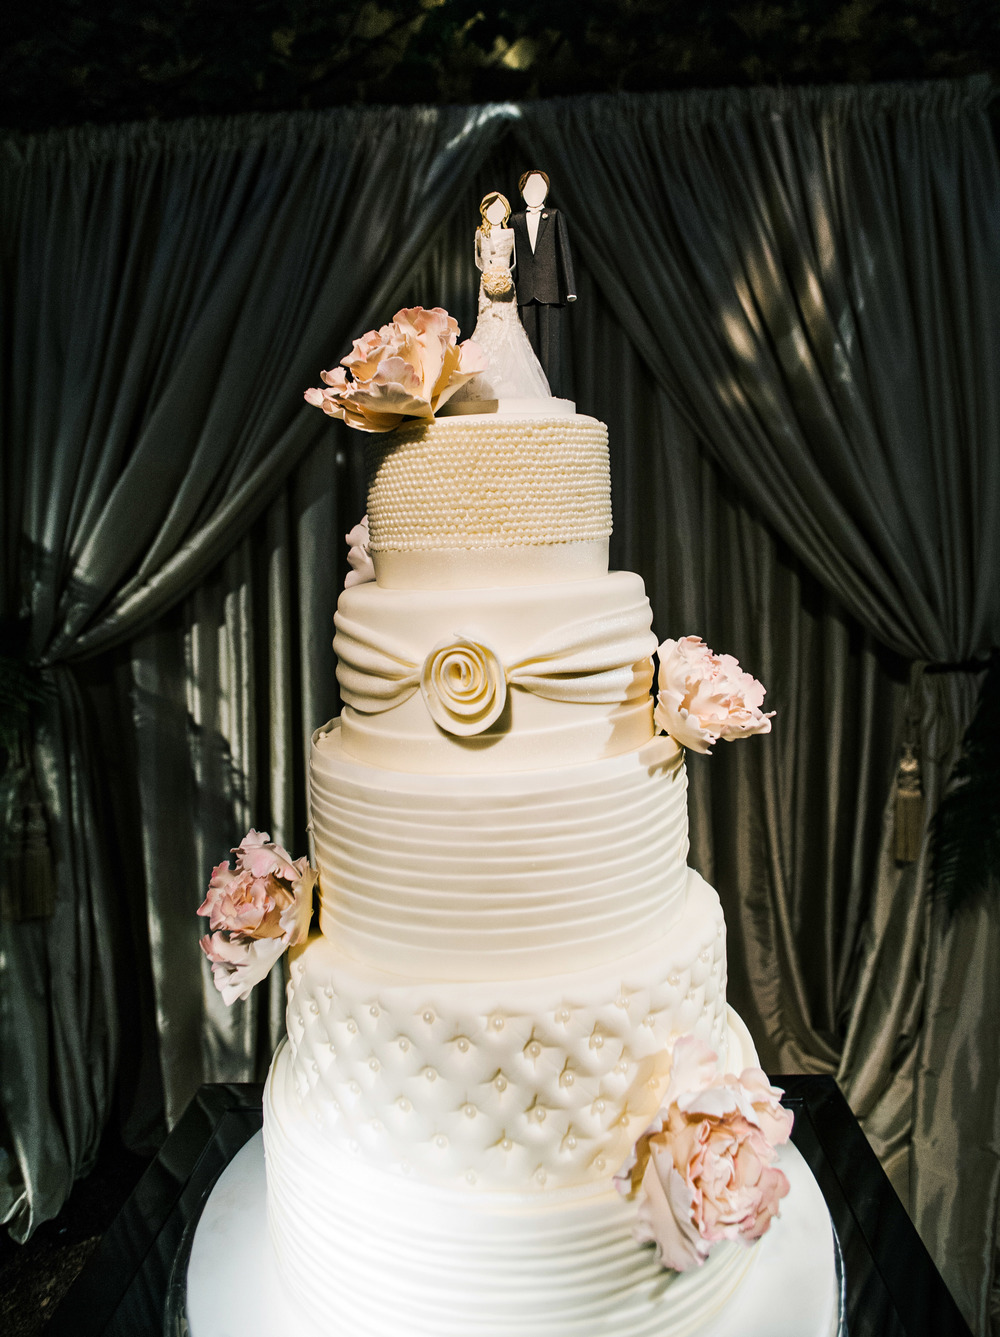 56. LS - modern+romantic wedding cake,  white+ruffle + tufted+pearl+ rouching wedding cake, custom cake topper, cake topper ideas,.jpg